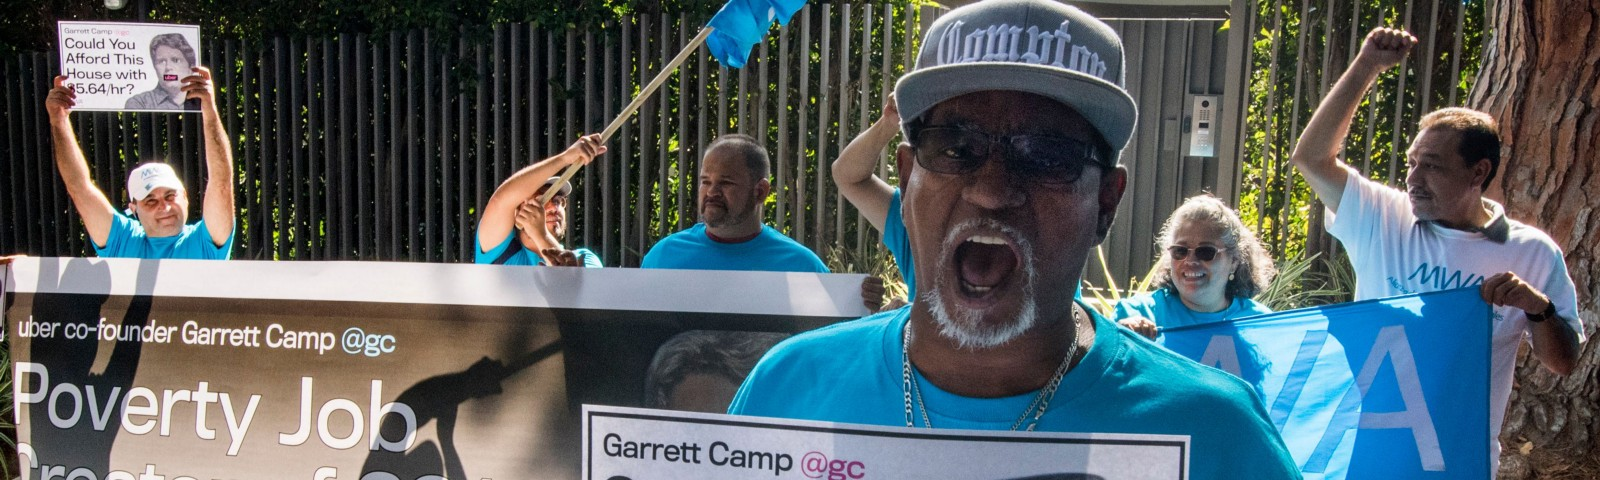 Uber and Lyft drivers demonstrate outside the $72 million home of Uber co-founder Garrett Camp to protest unfair wages.